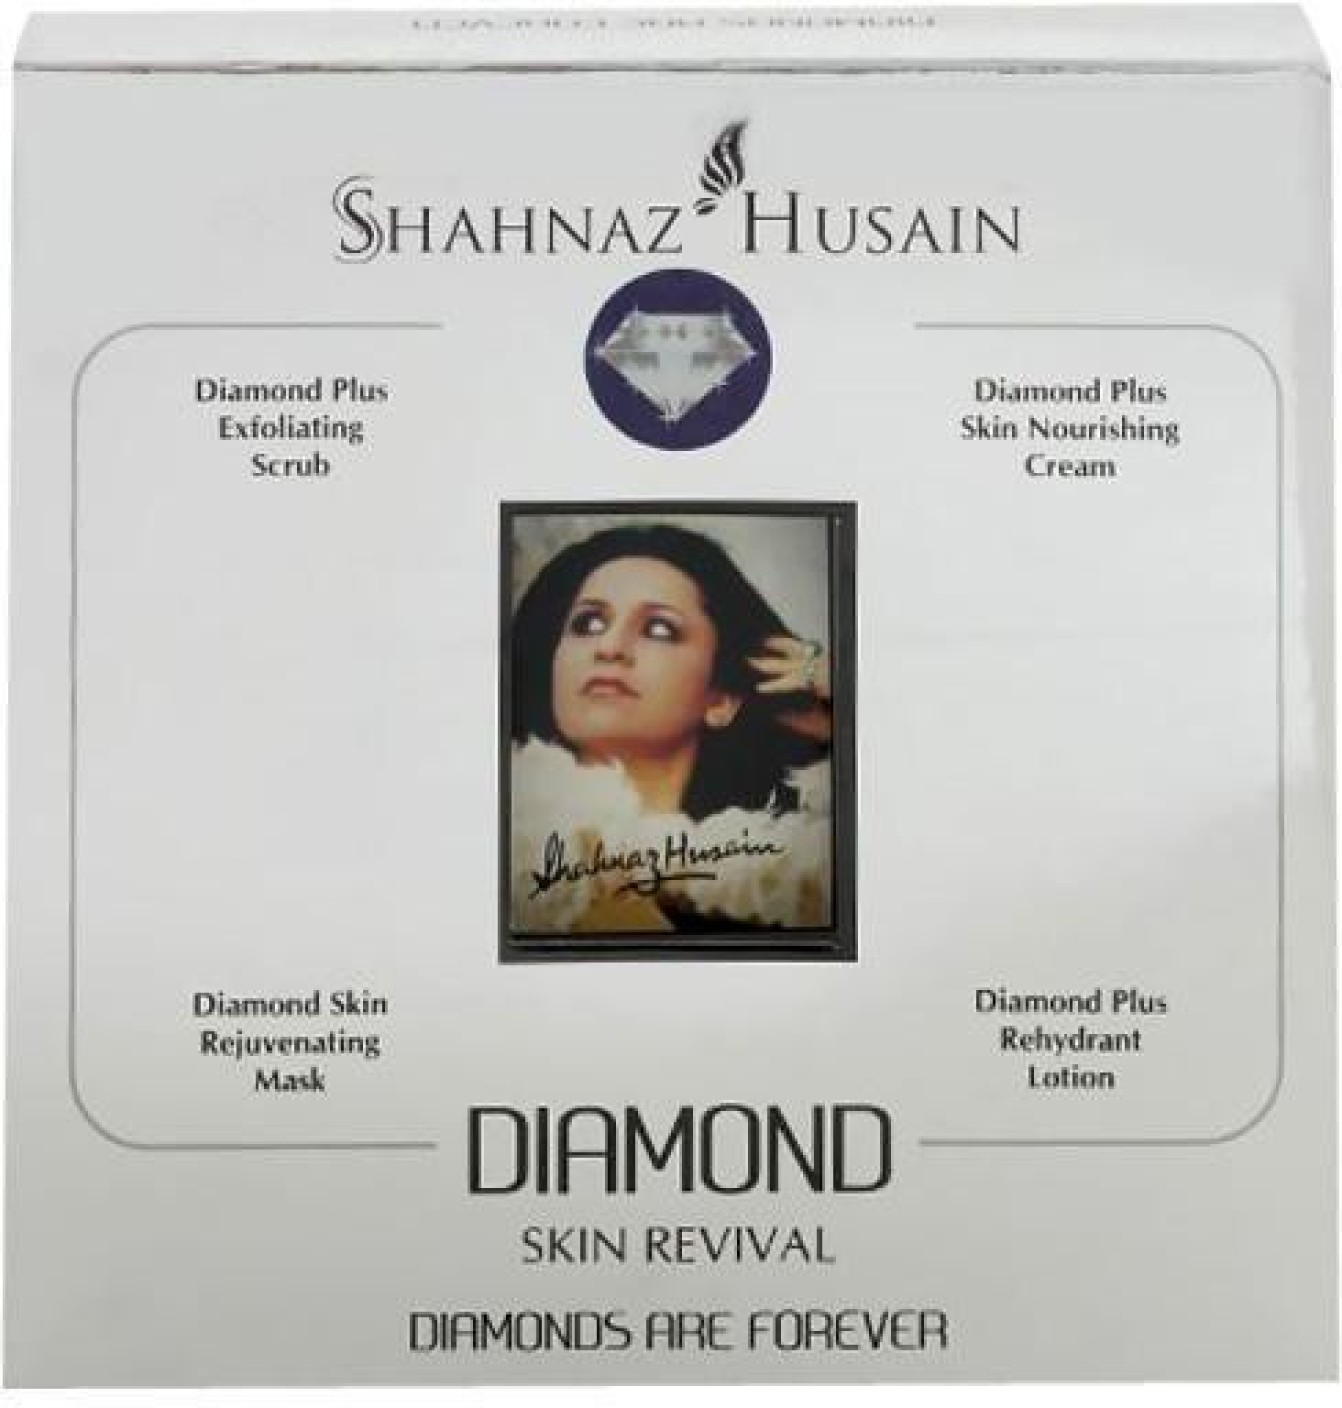 Shahnaz hussain diamond facial our knobs